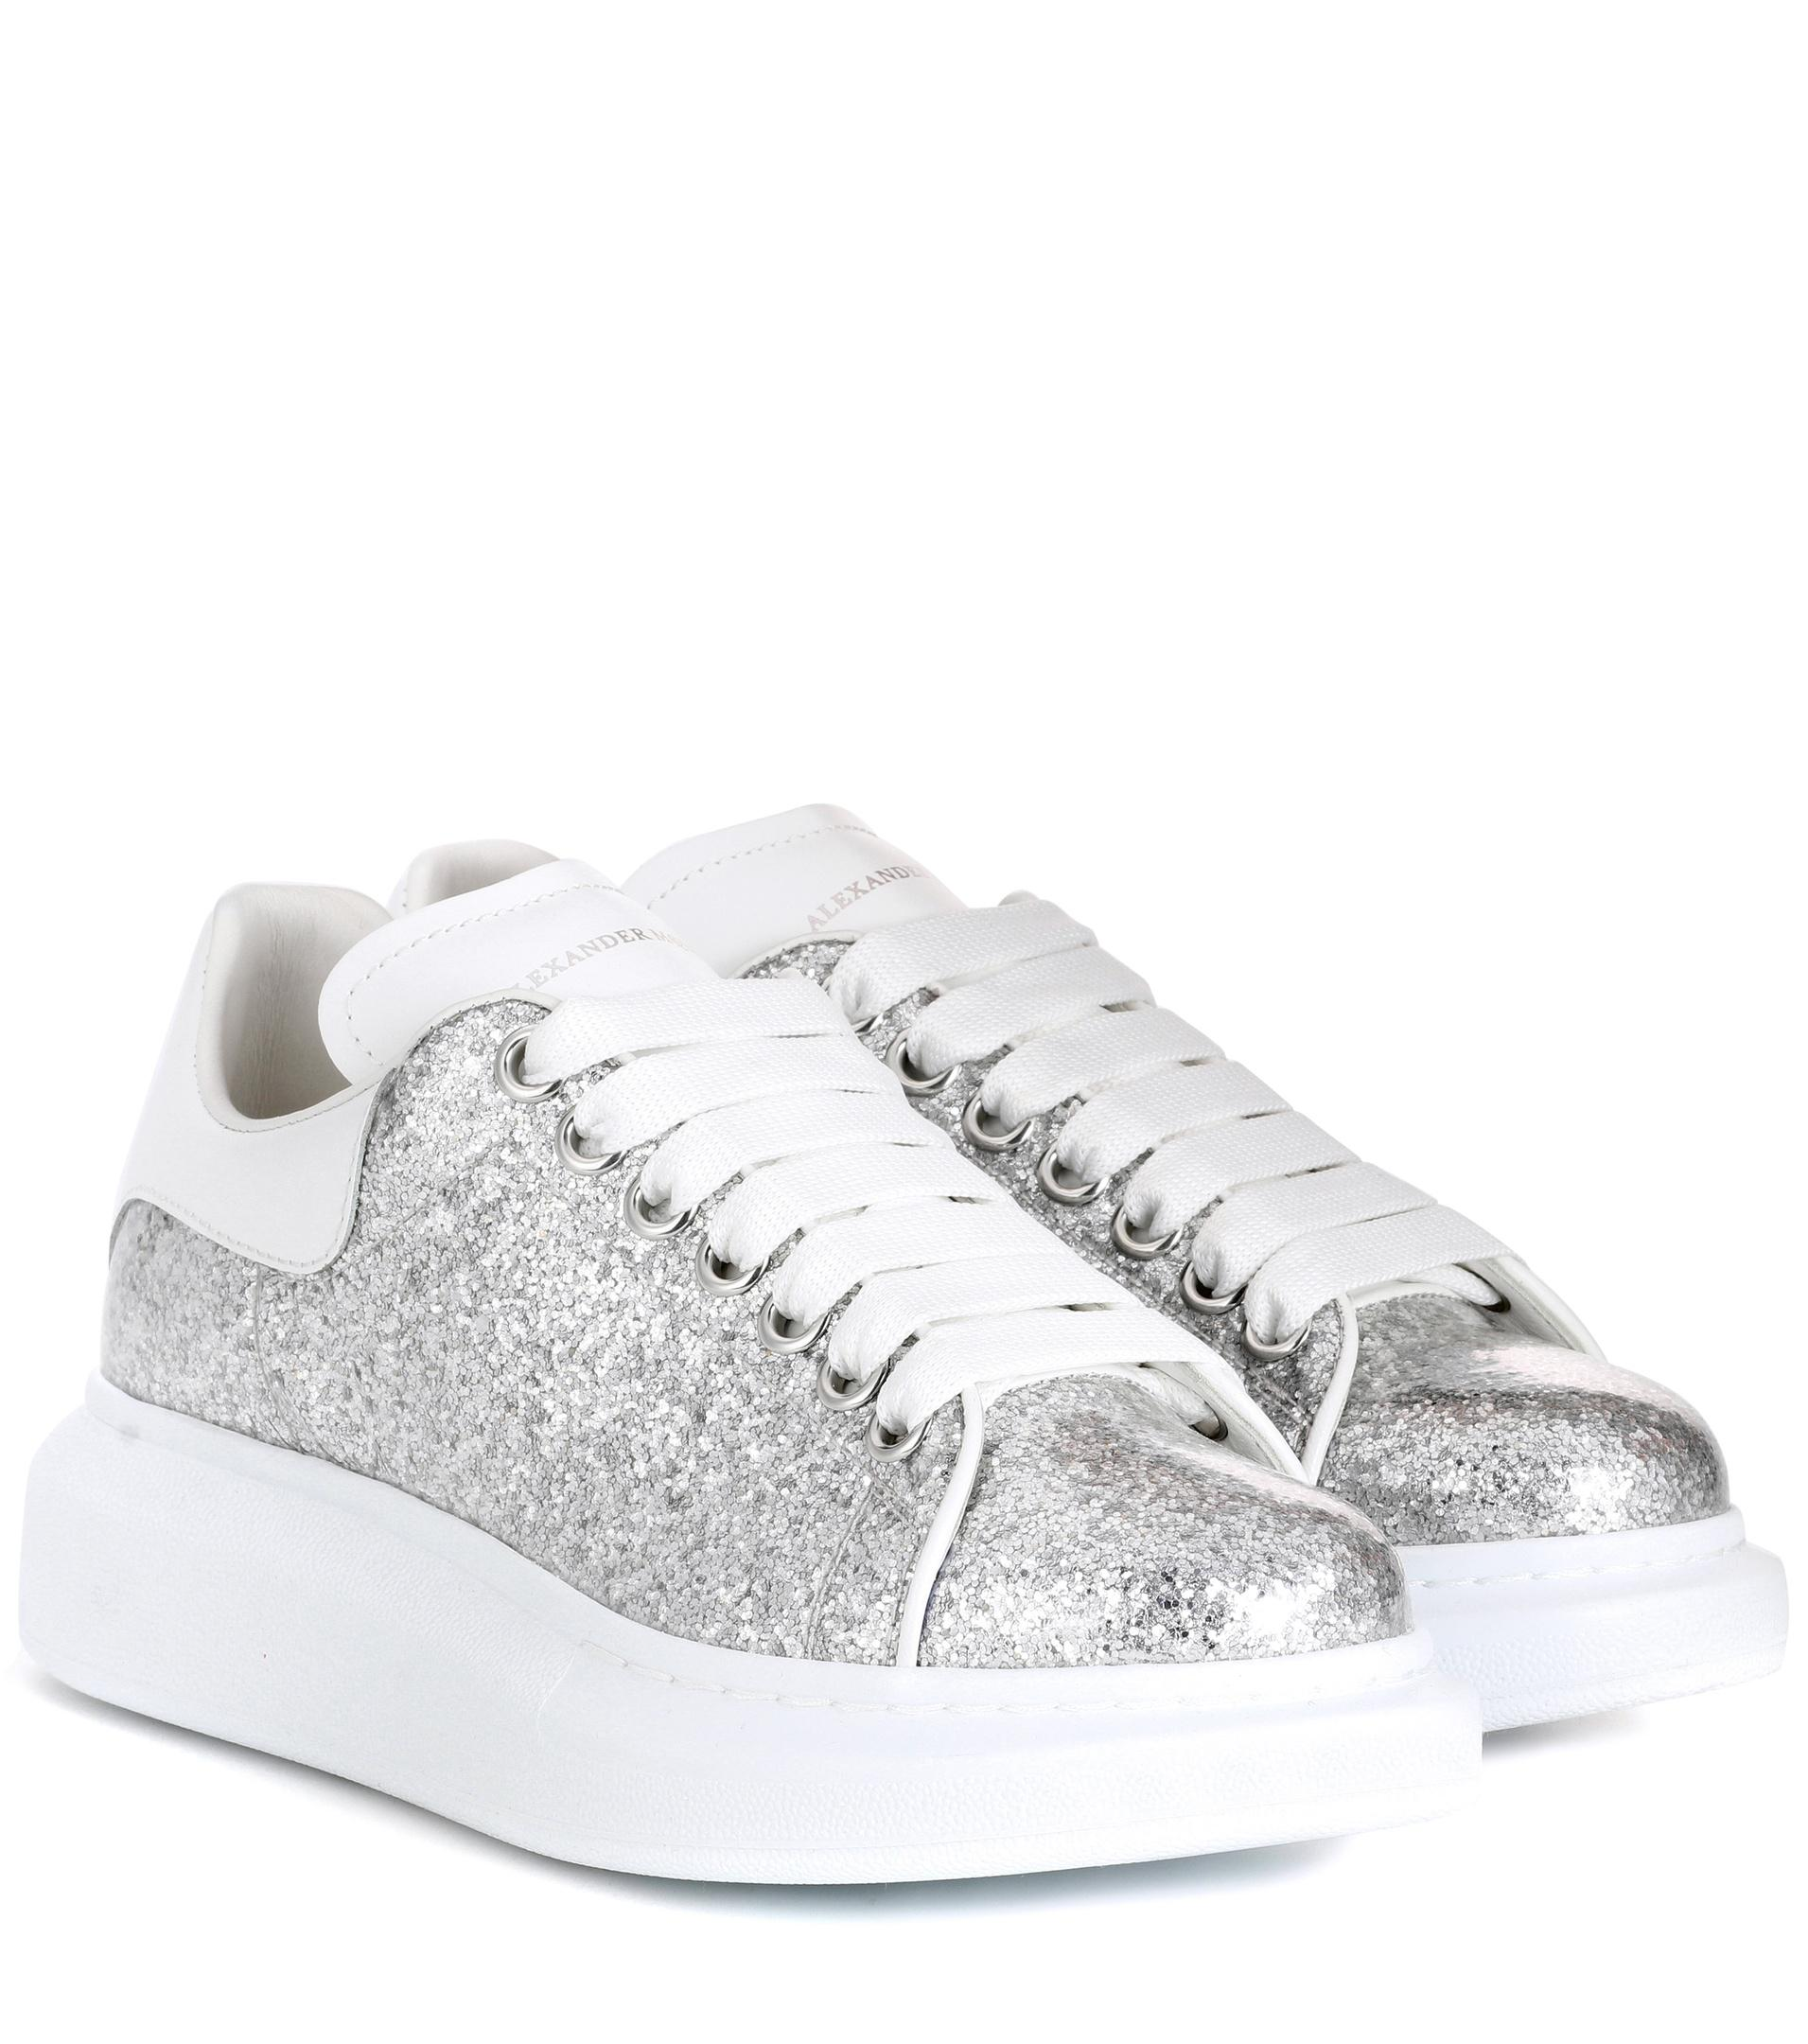 Women's Metallic Glitter Platform Sneakers